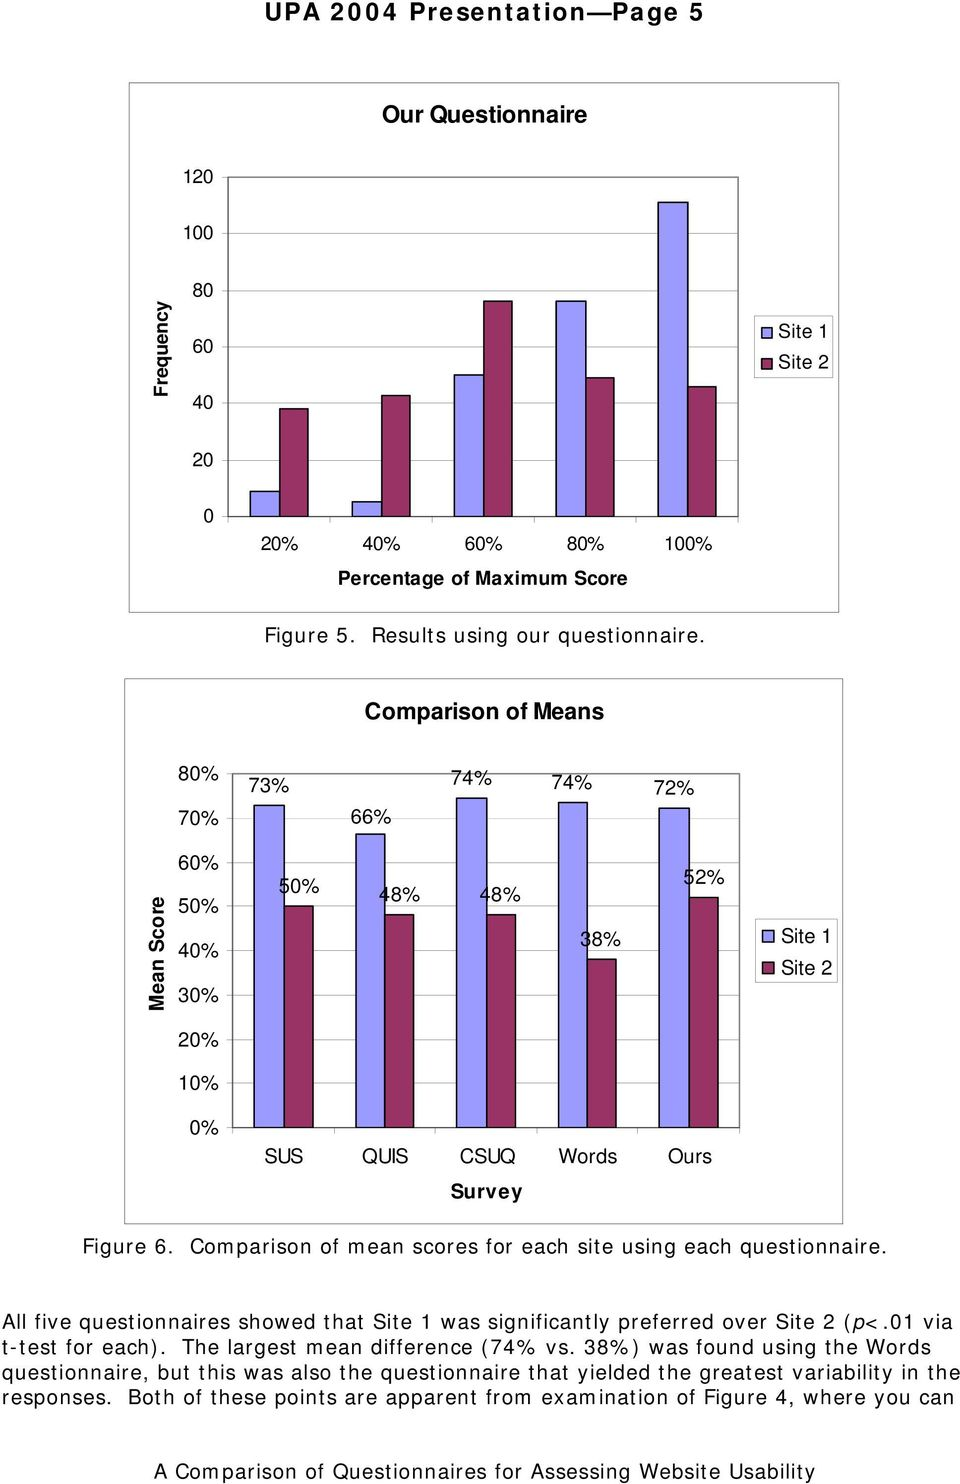 Comparison of mean scores for each site using each questionnaire. All five questionnaires showed that Site 1 was significantly preferred over Site 2 (p<.01 via t-test for each).